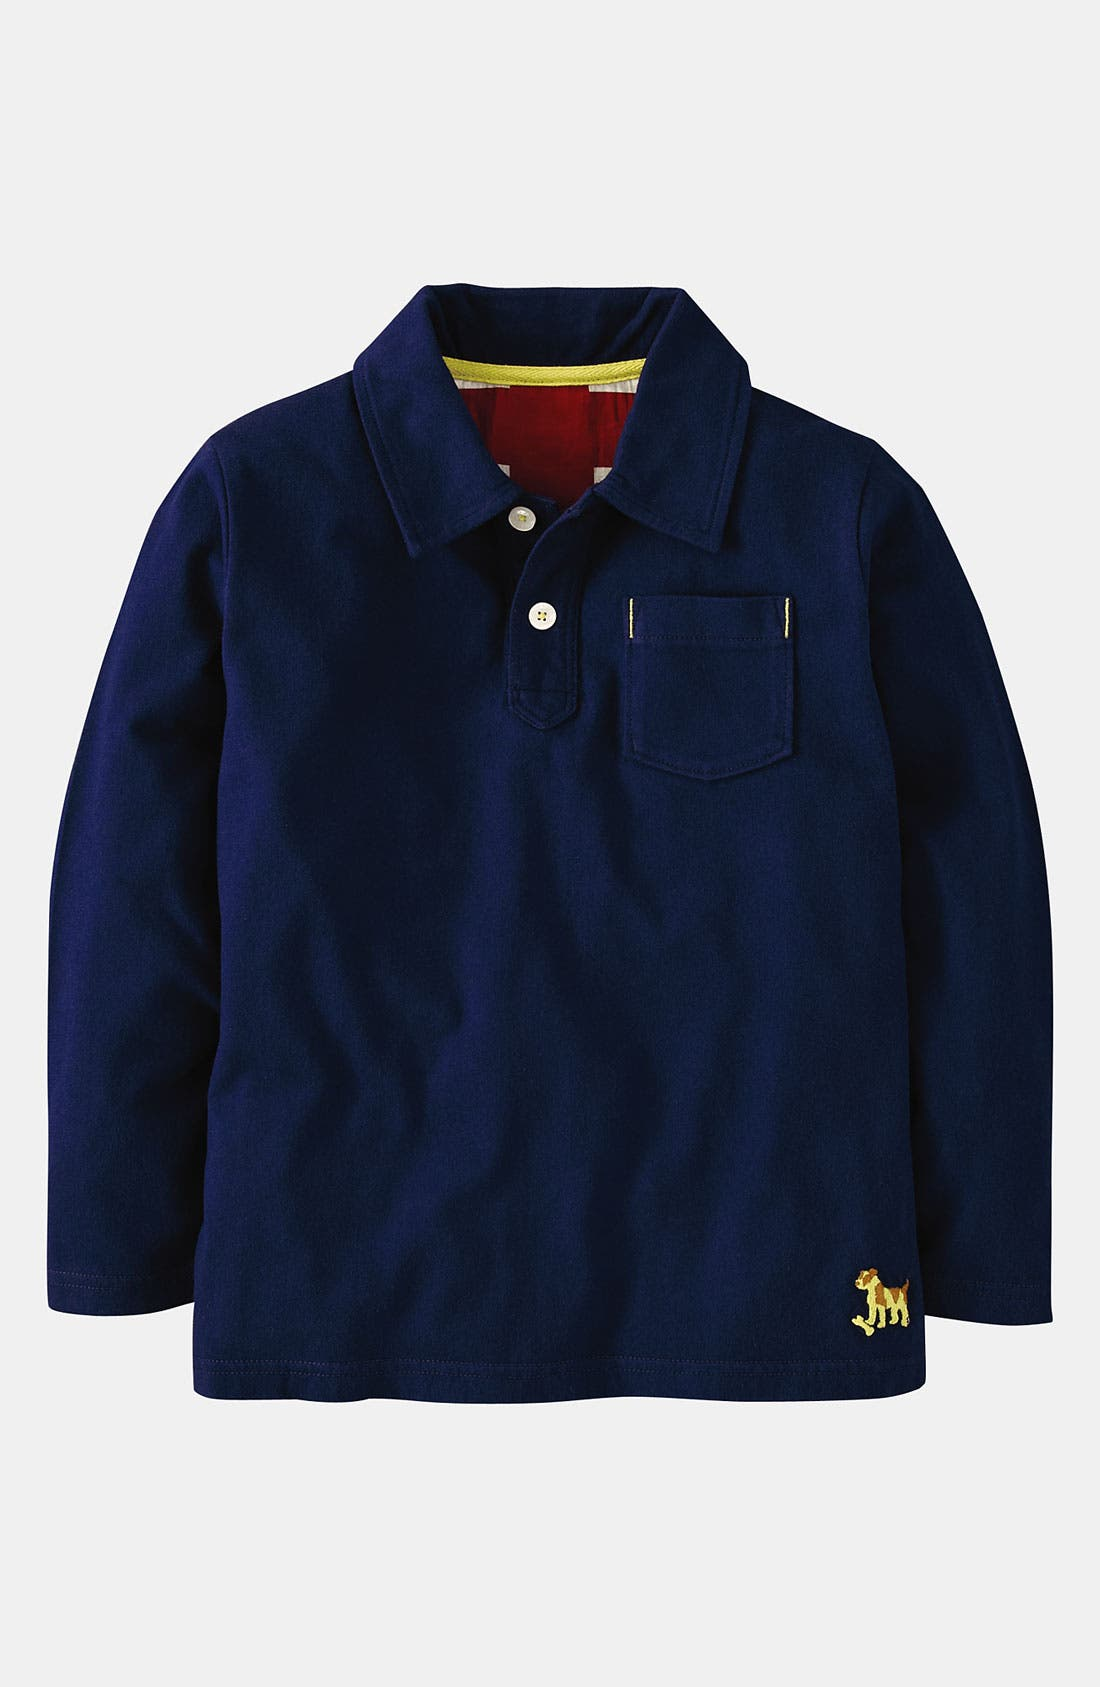 Alternate Image 1 Selected - Mini Boden Jersey Polo (Toddler)